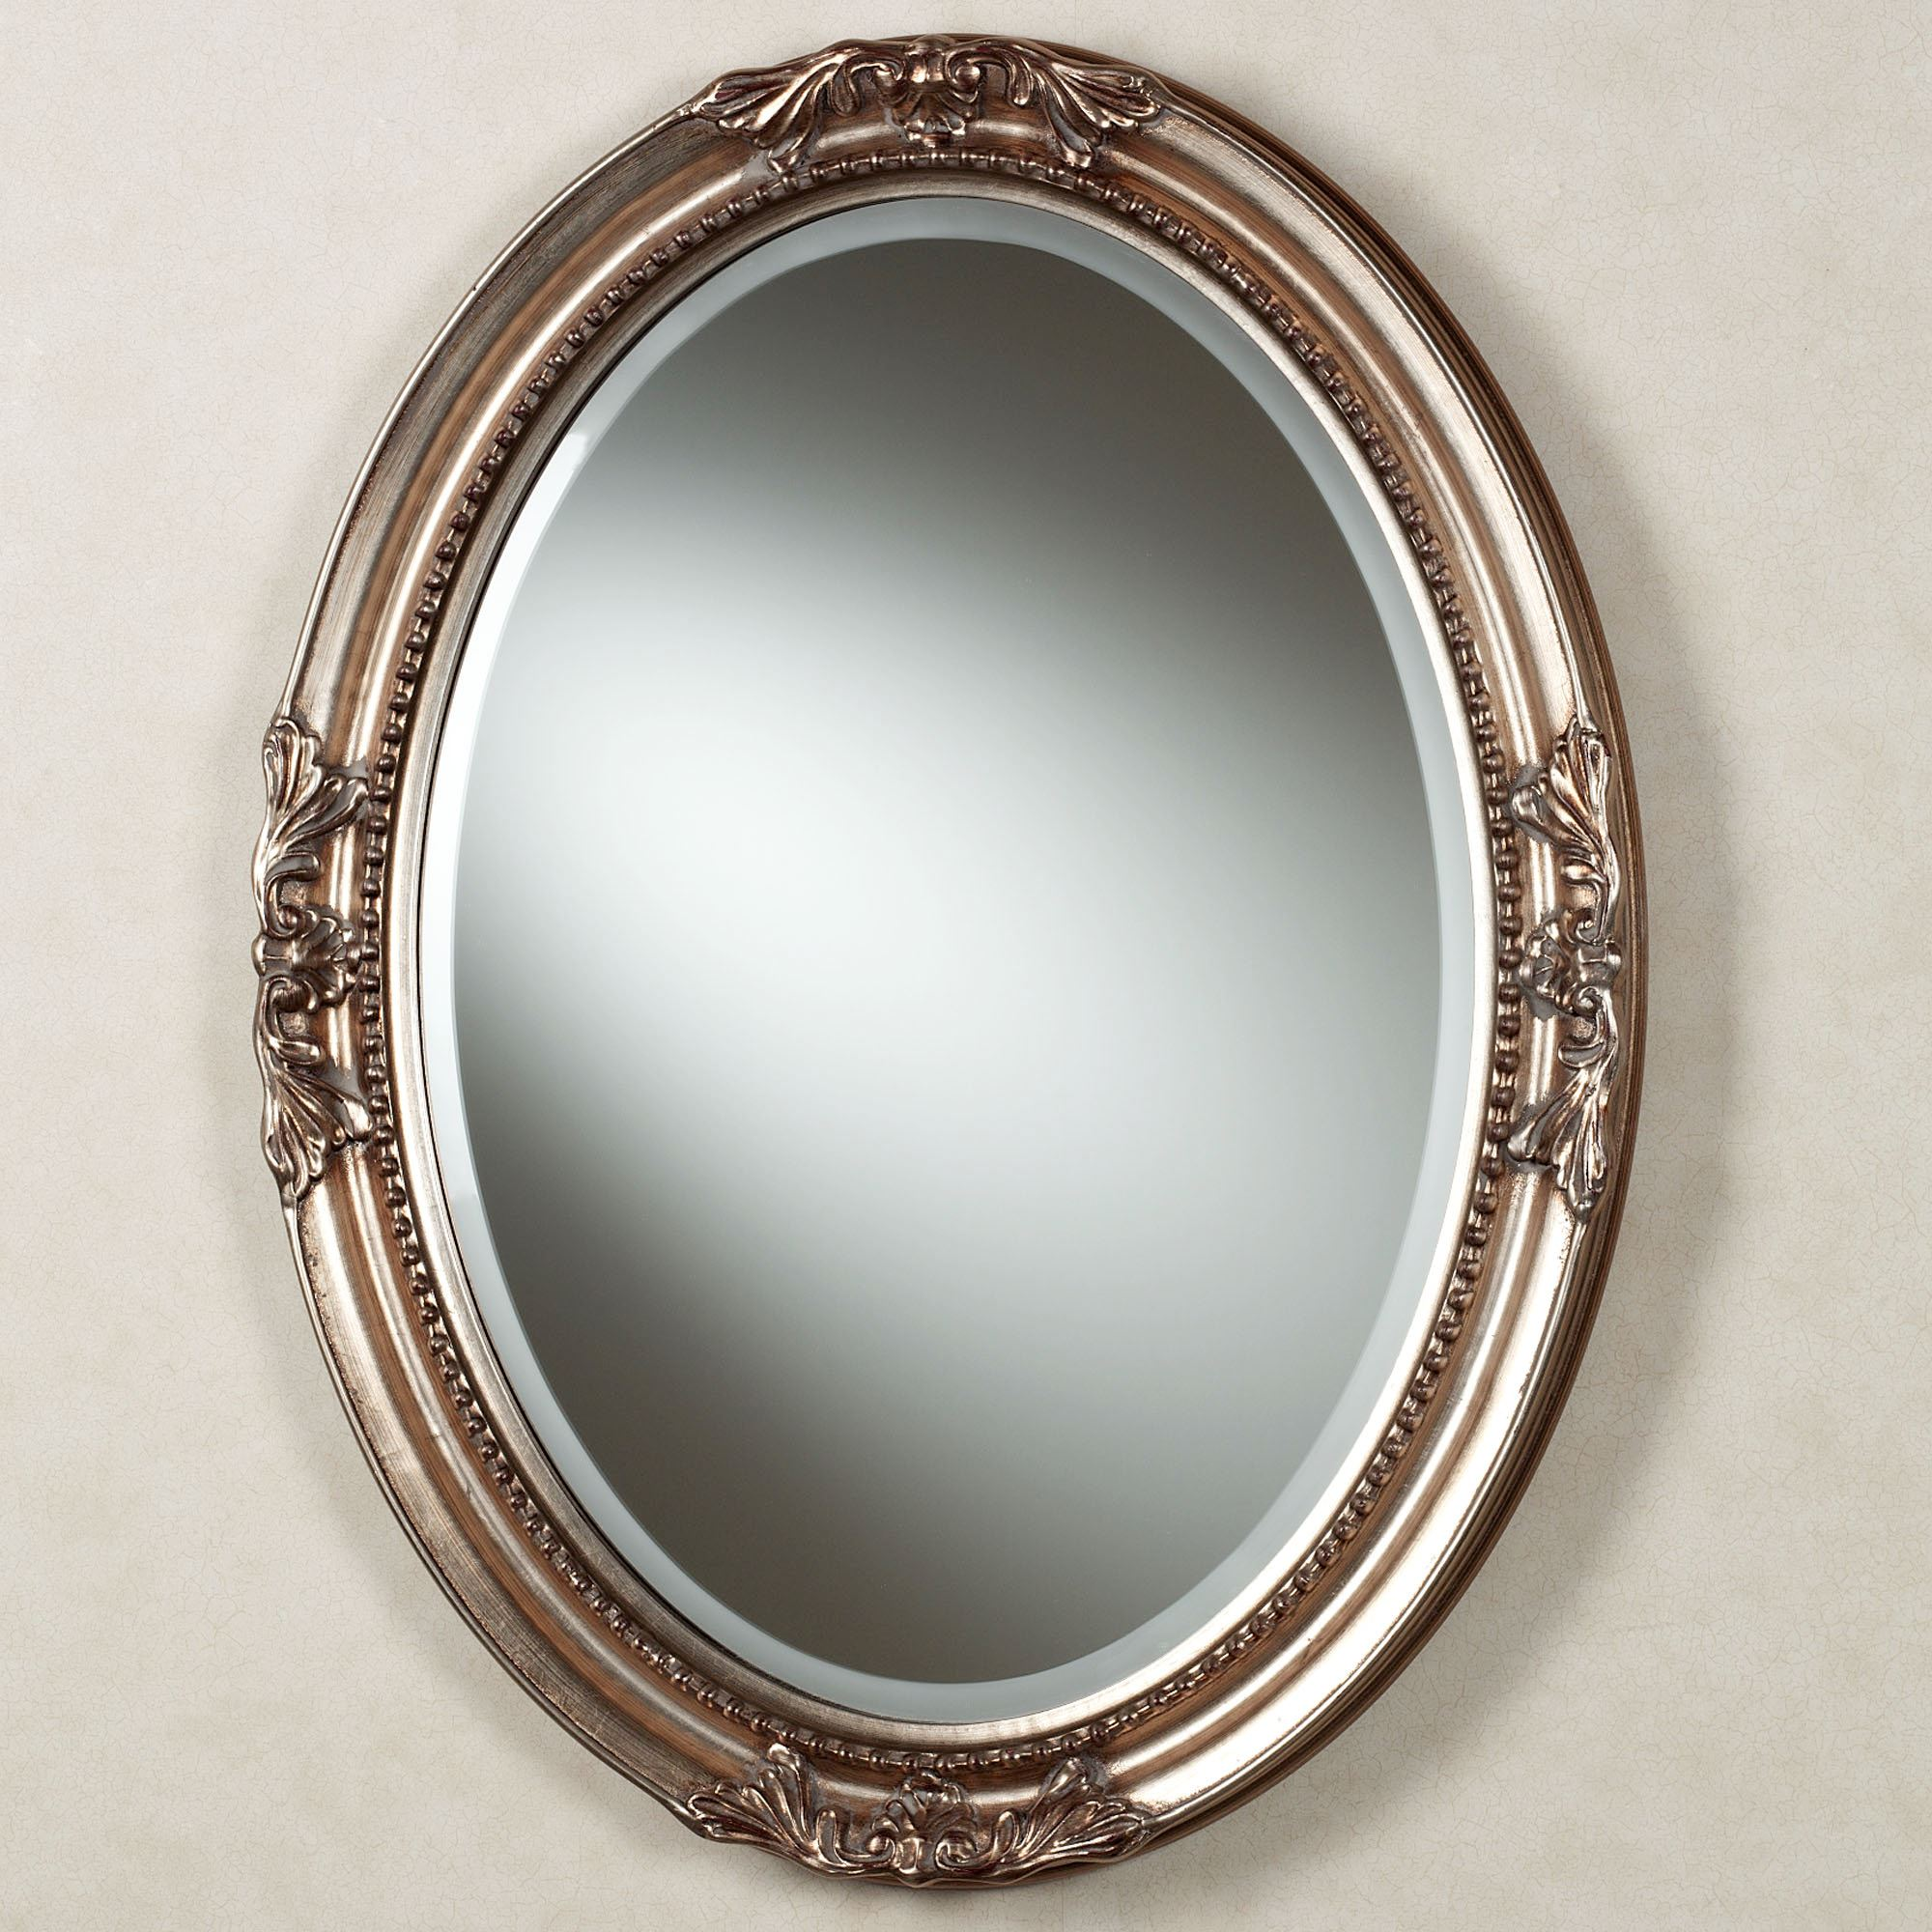 Oval Mirrors: Add a few mirrors in your home to both add light and create the illusion of more space. anthonyevans.tk - Your Online Decorative Accessories Store! Get 5% in rewards with Club O! Kaylana Modern Glam Wall Mirror